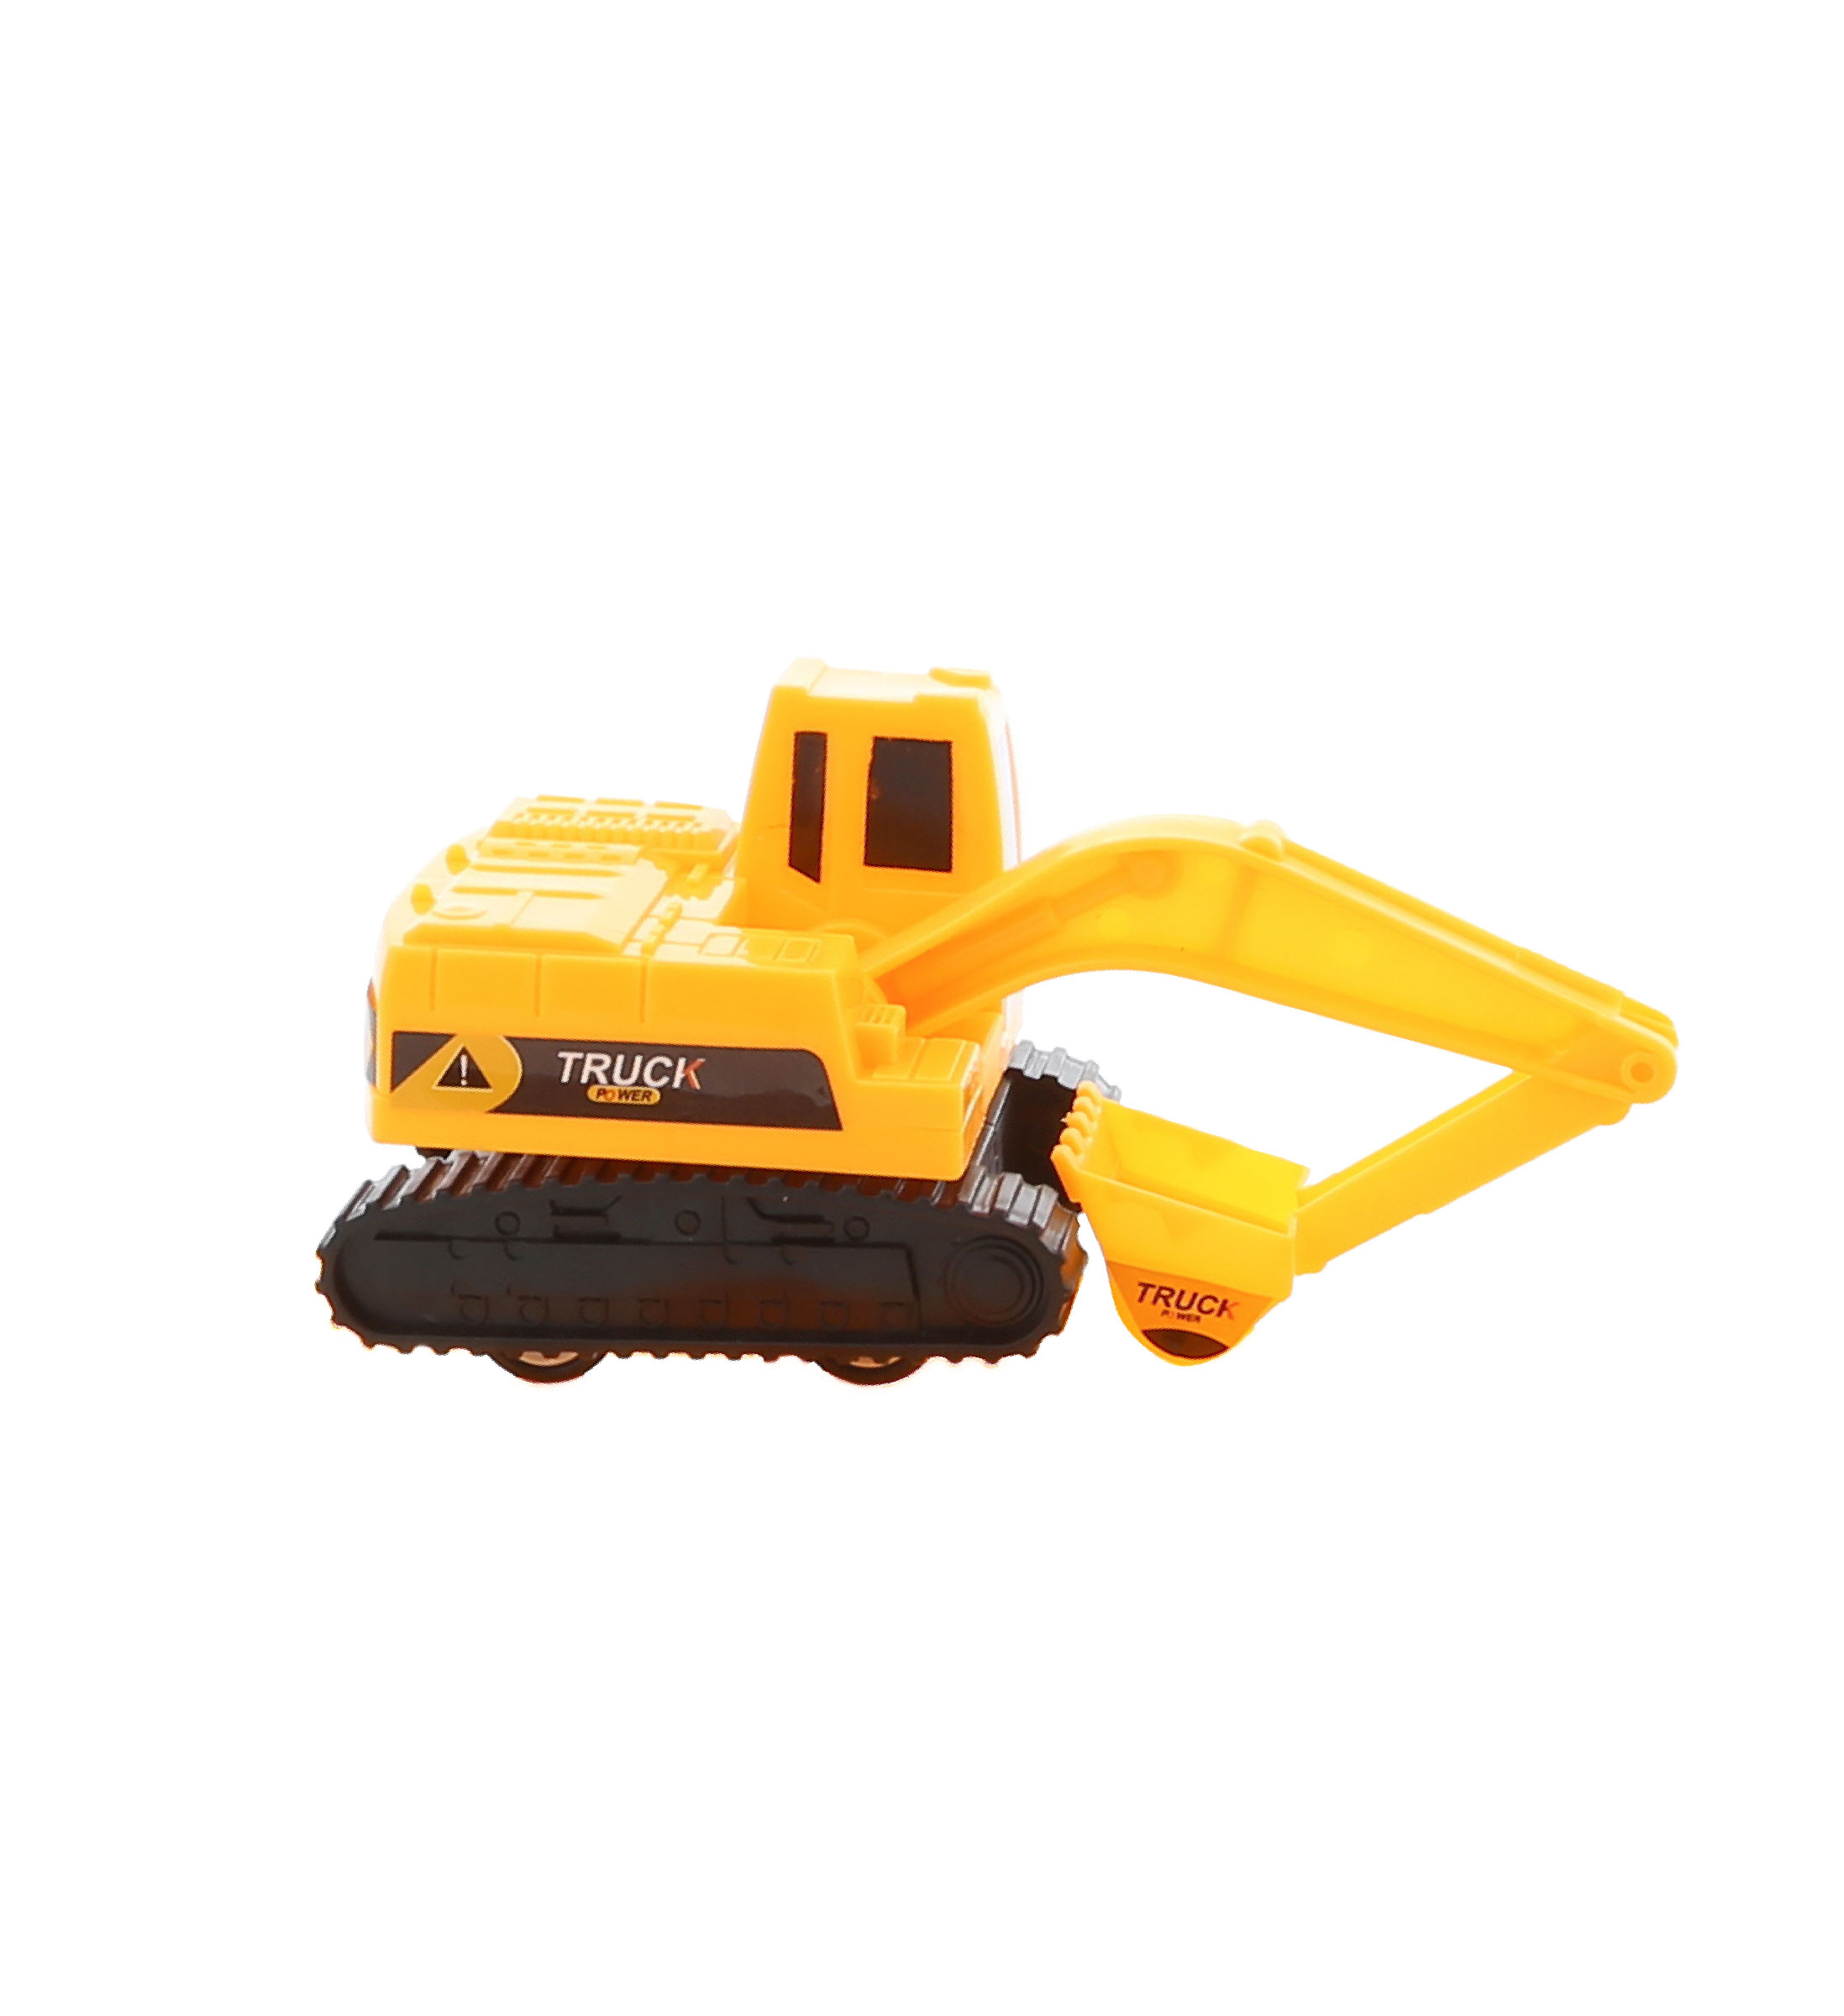 Tow Truck Mozlly Yellow Construction Vehicles Play Set Tractor Building Constructions Trucks Variety Toy Figure Kids Toddlers Boys Toys /& Games Dump Truck 3.5 Inch Friction Powered Excavator